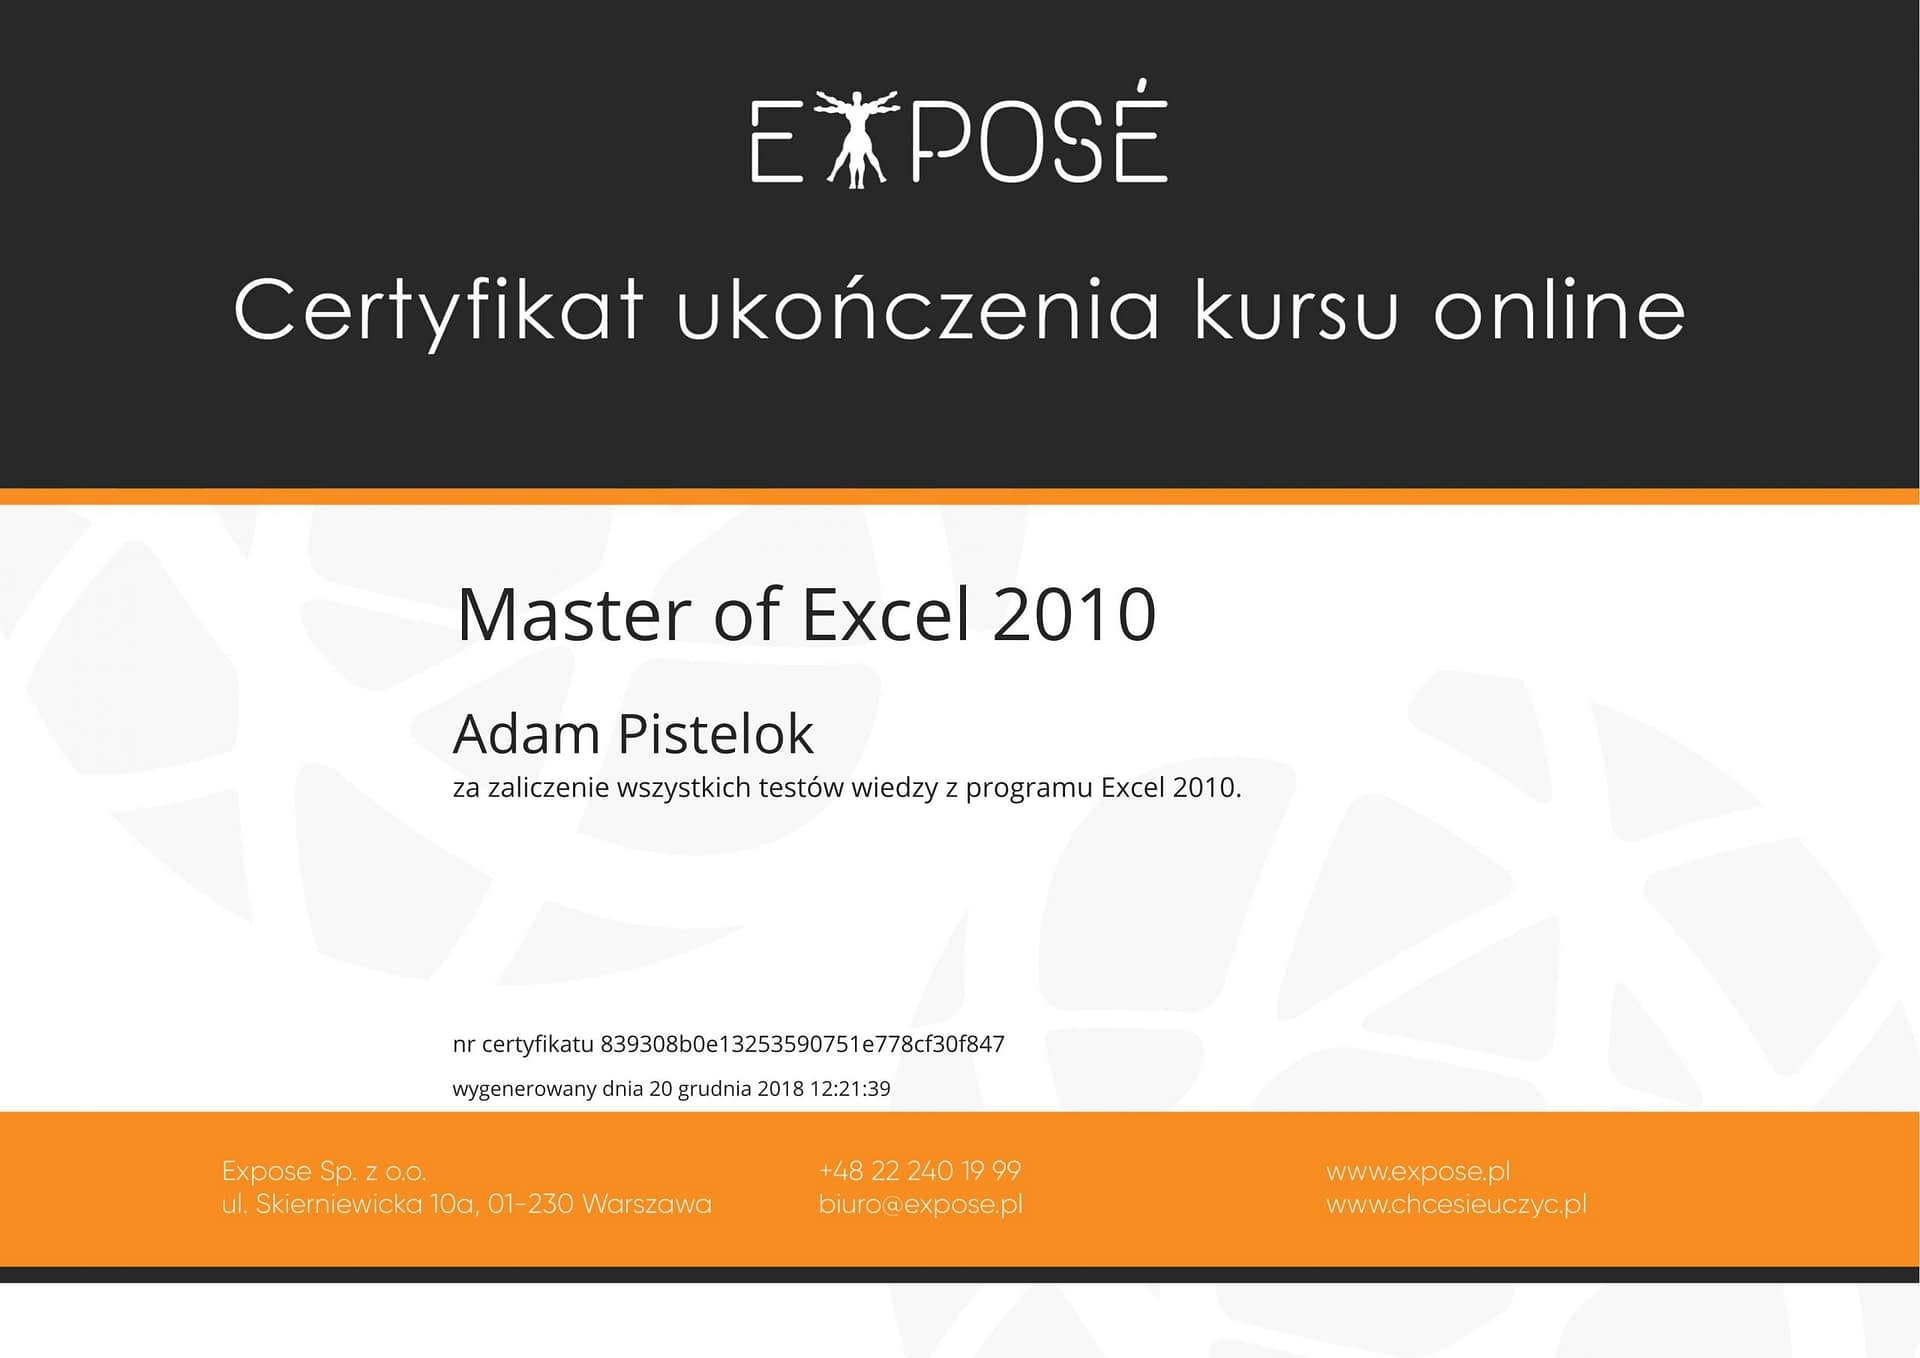 Master of excel 2010